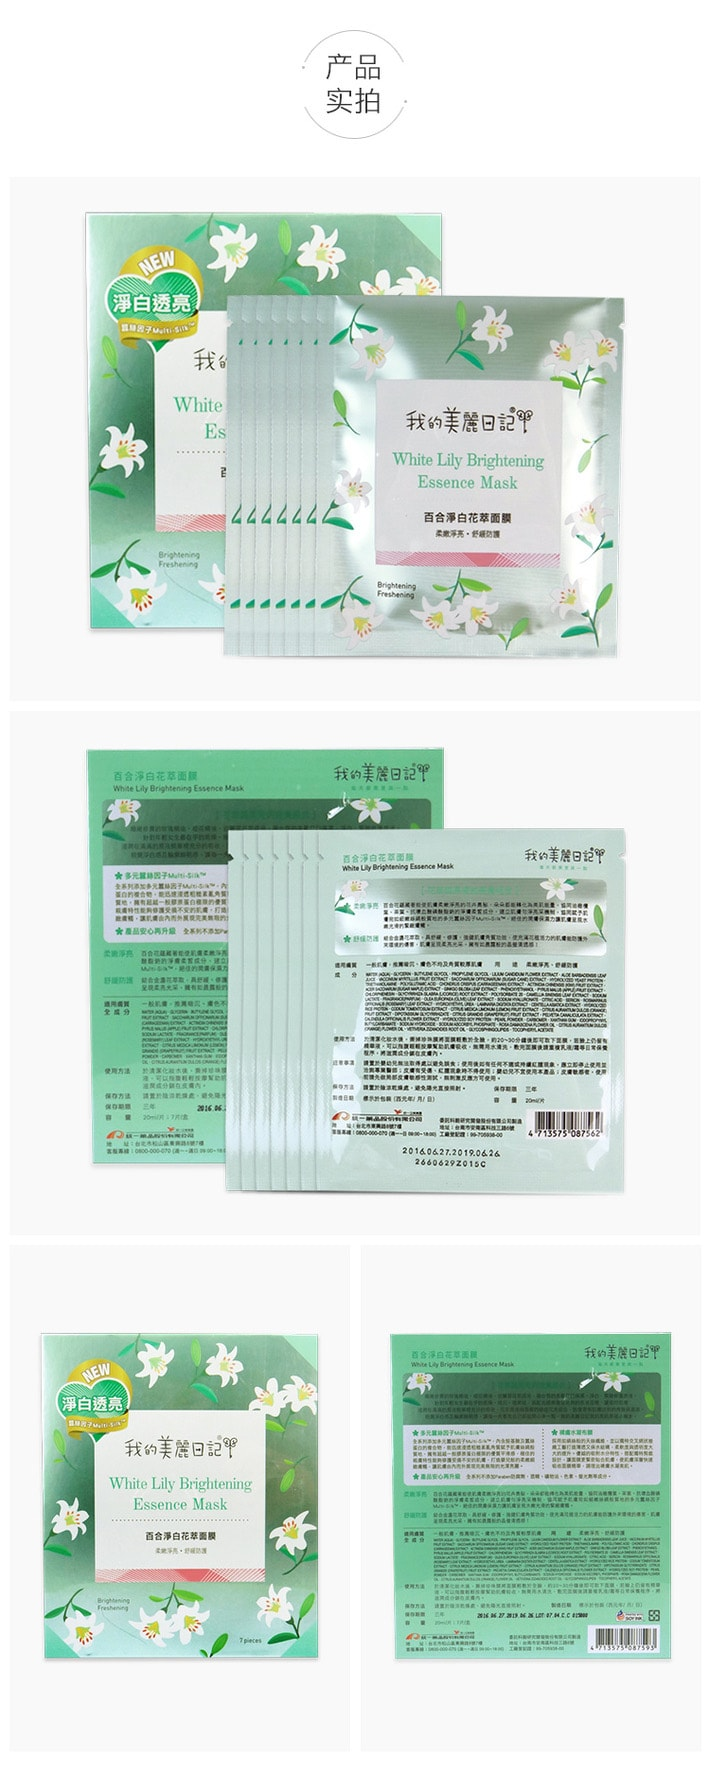 Lily Brightening Essence Mask - Packaging